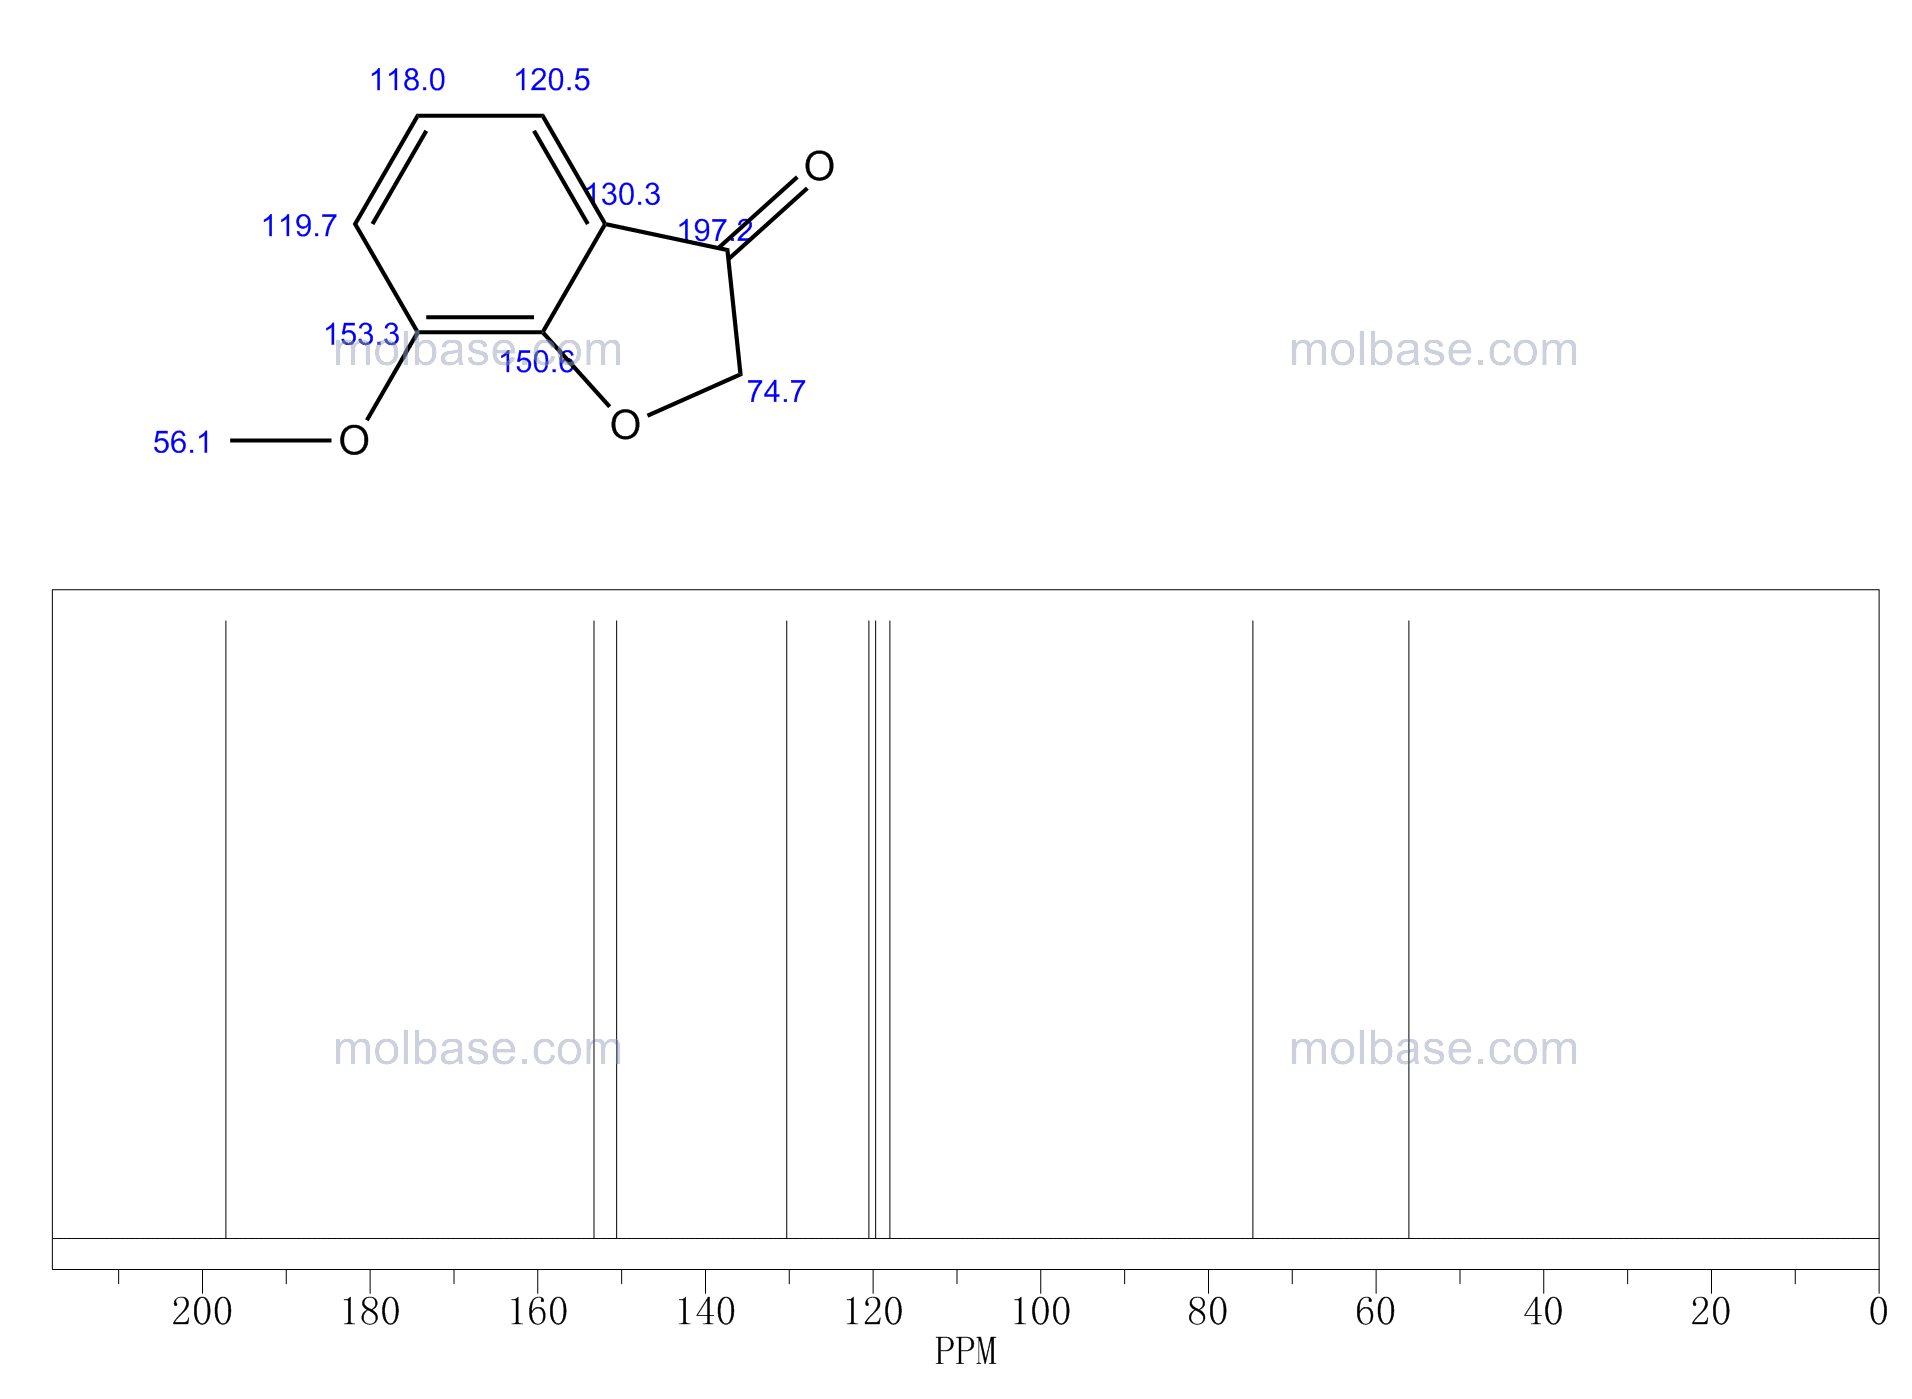 7-Methoxy-3(2H)-benzofuranone NMR spectra analysis, Chemical CAS NO. 7169-37-1 NMR spectral analysis, 7-Methoxy-3(2H)-benzofuranone C-NMR spectrum